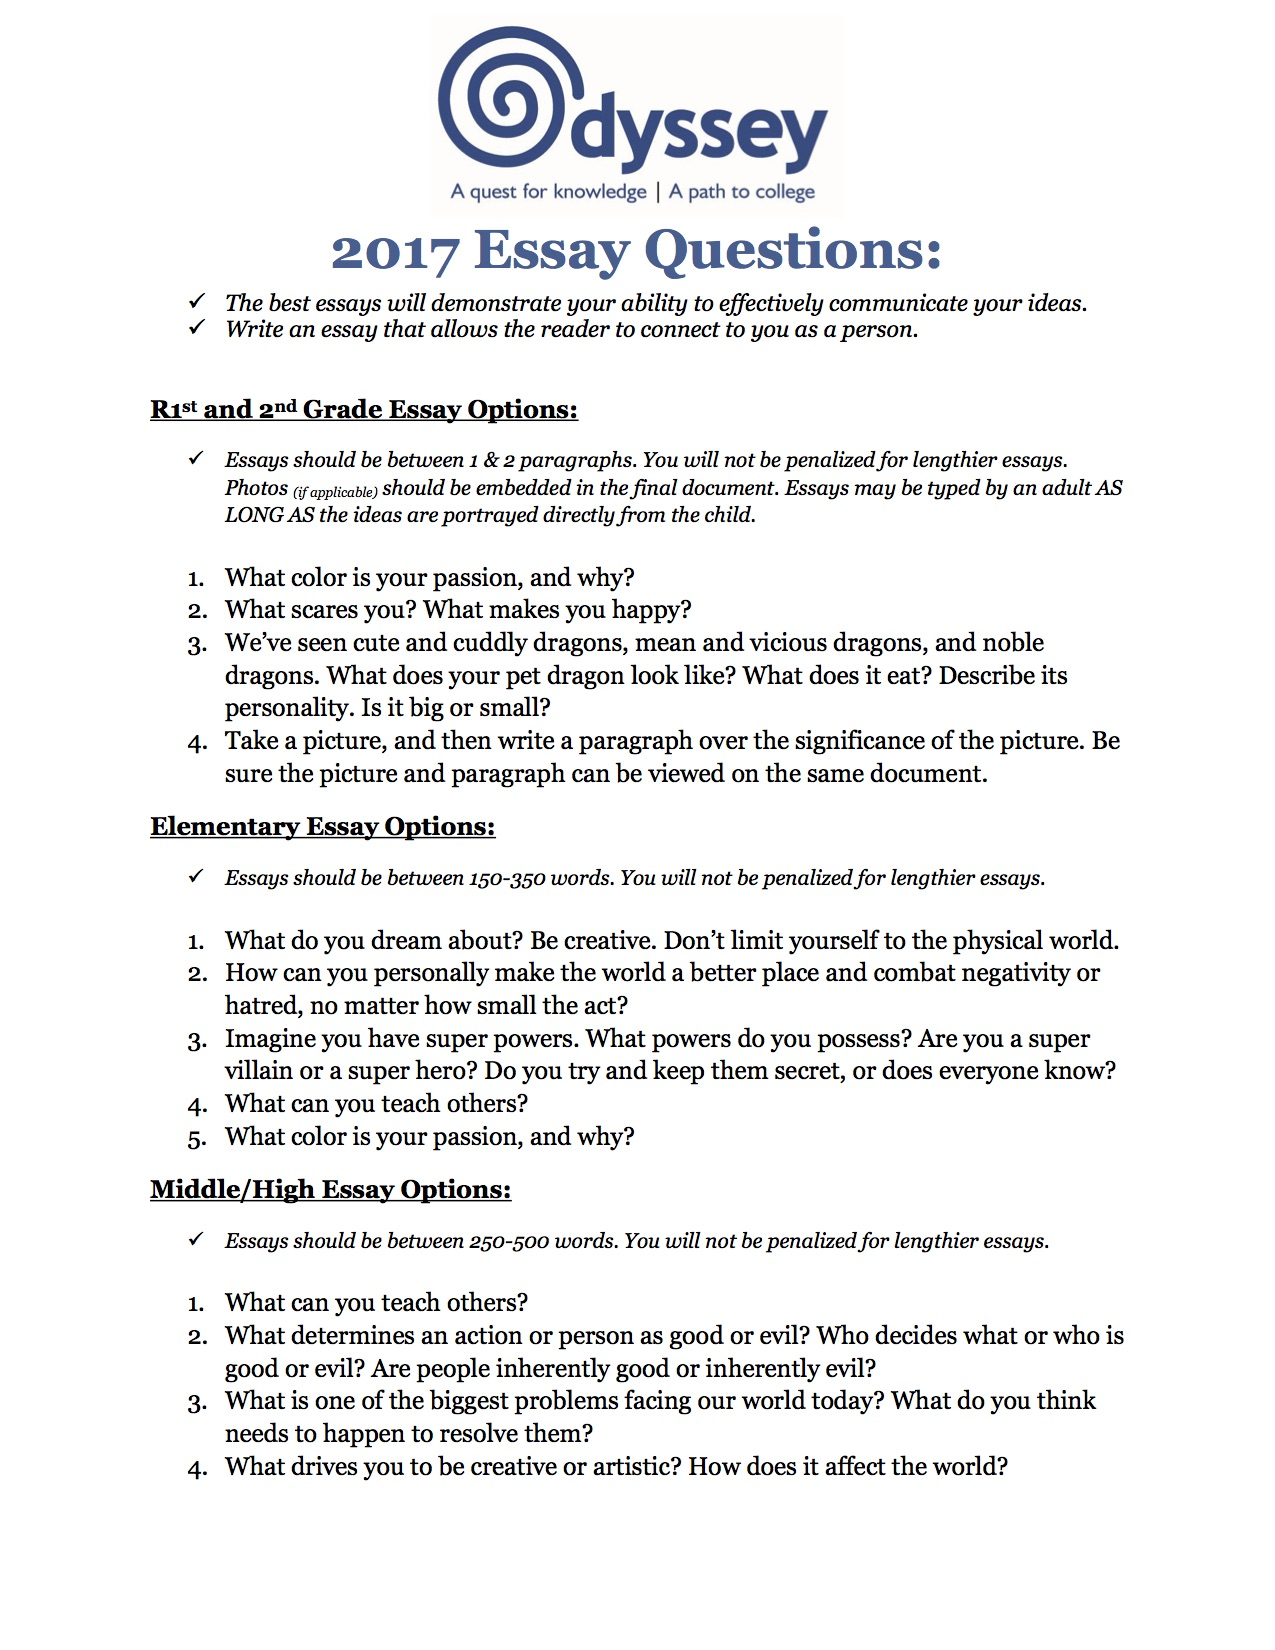 015 Best Essay Topics Example 5829f1d2c75f9a7c5588b1c6 Proposed20essay20topics202017 Surprising Composition For High School Students College Job Interview Full